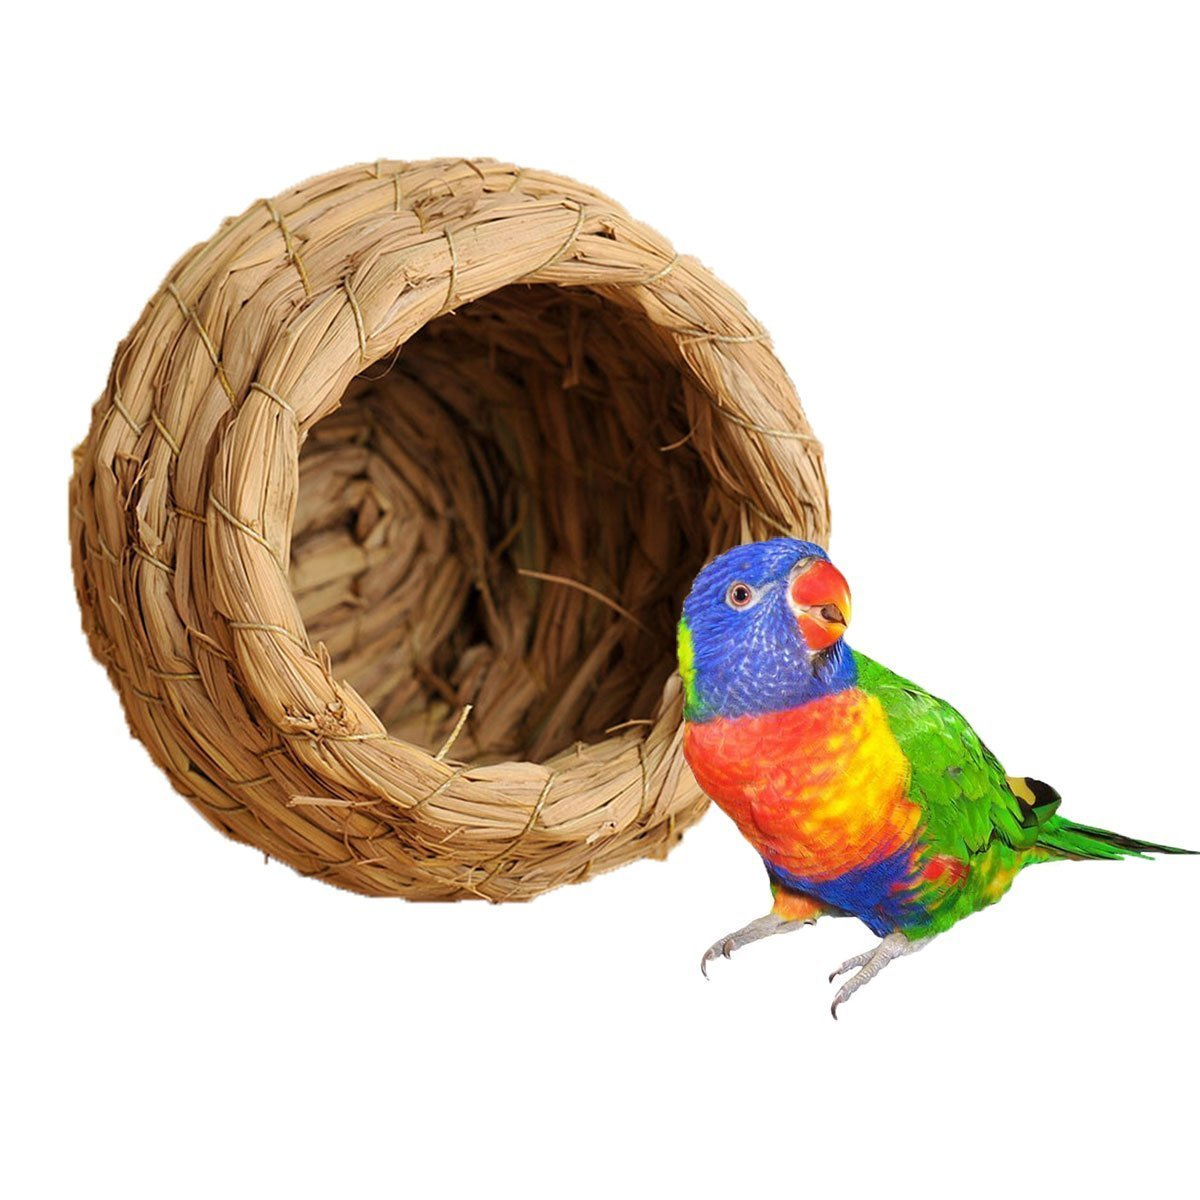 Handwoven Straw Bird Nest Cage For Parrot Macaw African Greys Budgies House Hatching Breeding Cave Also for Dove Hamster Gerbil Chinchillas Peety